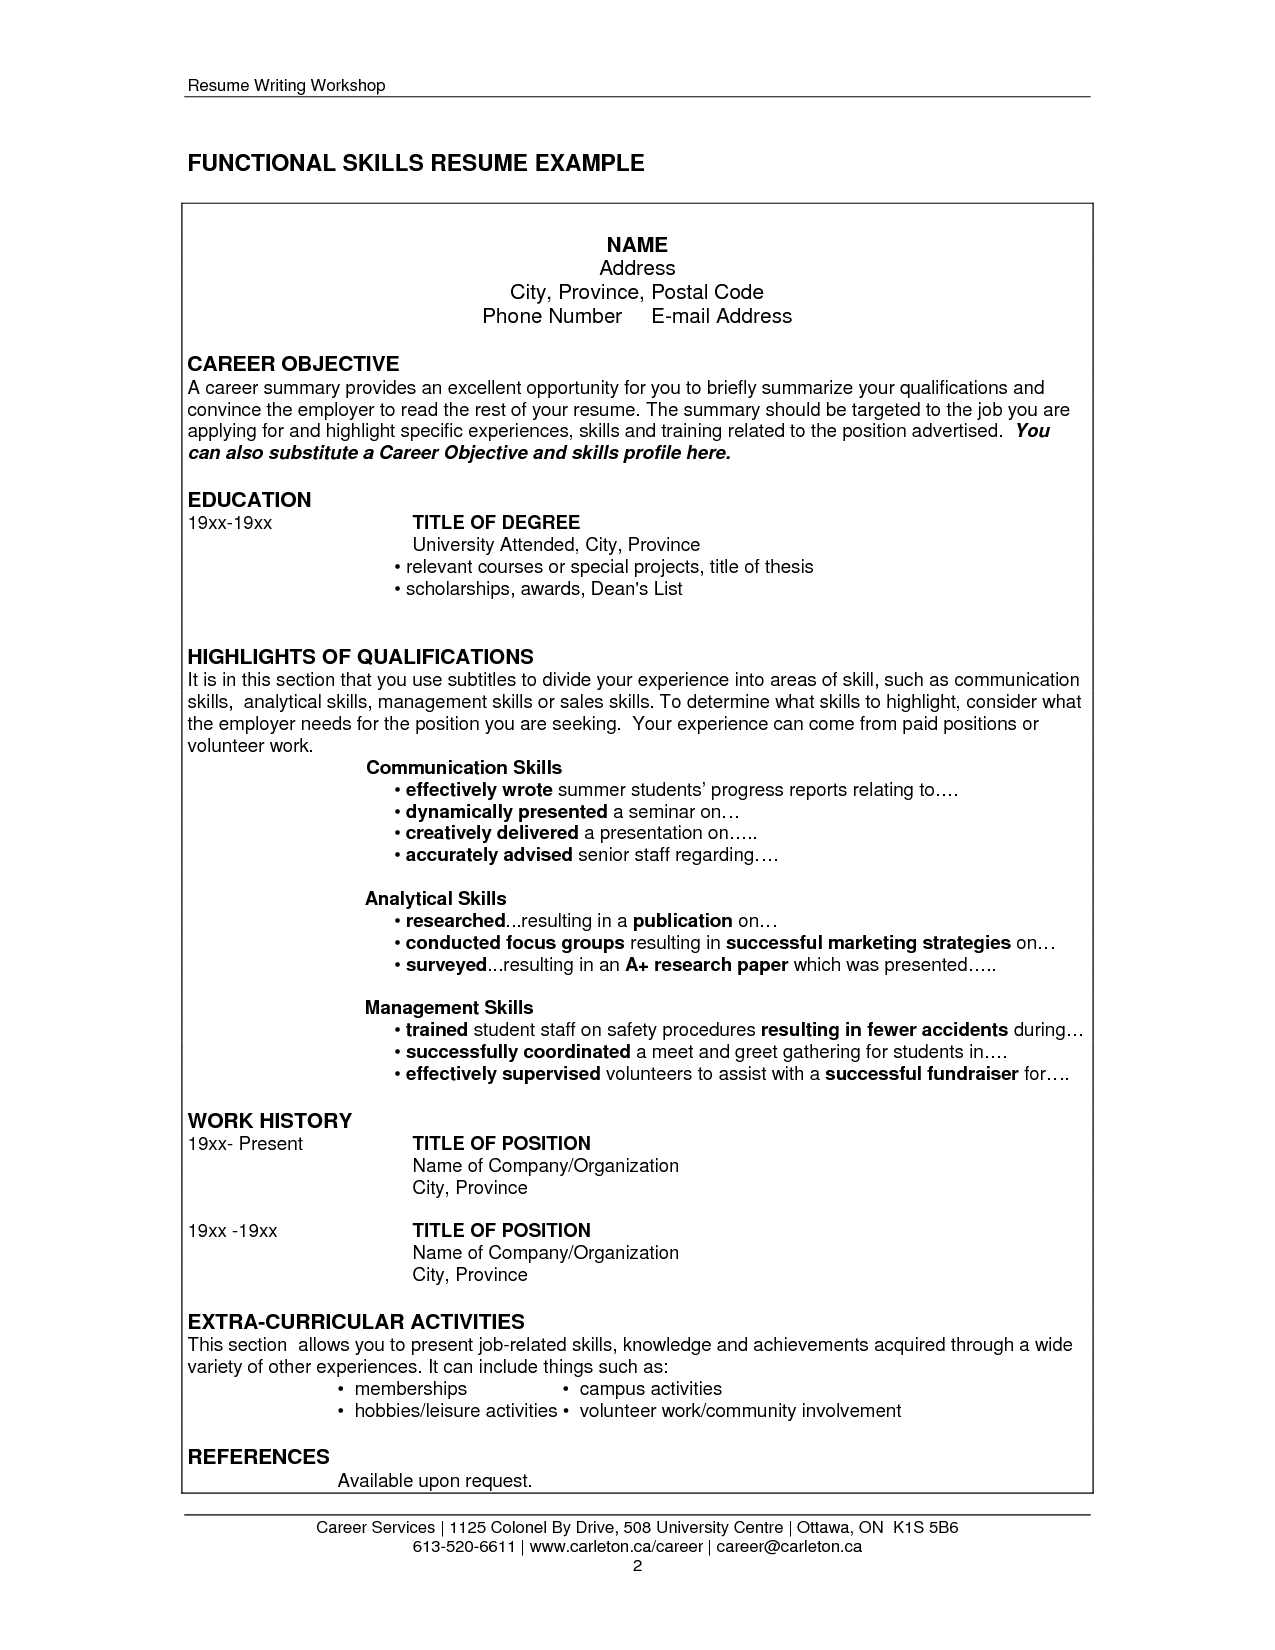 Resume Examples With Skills Resumeexamples